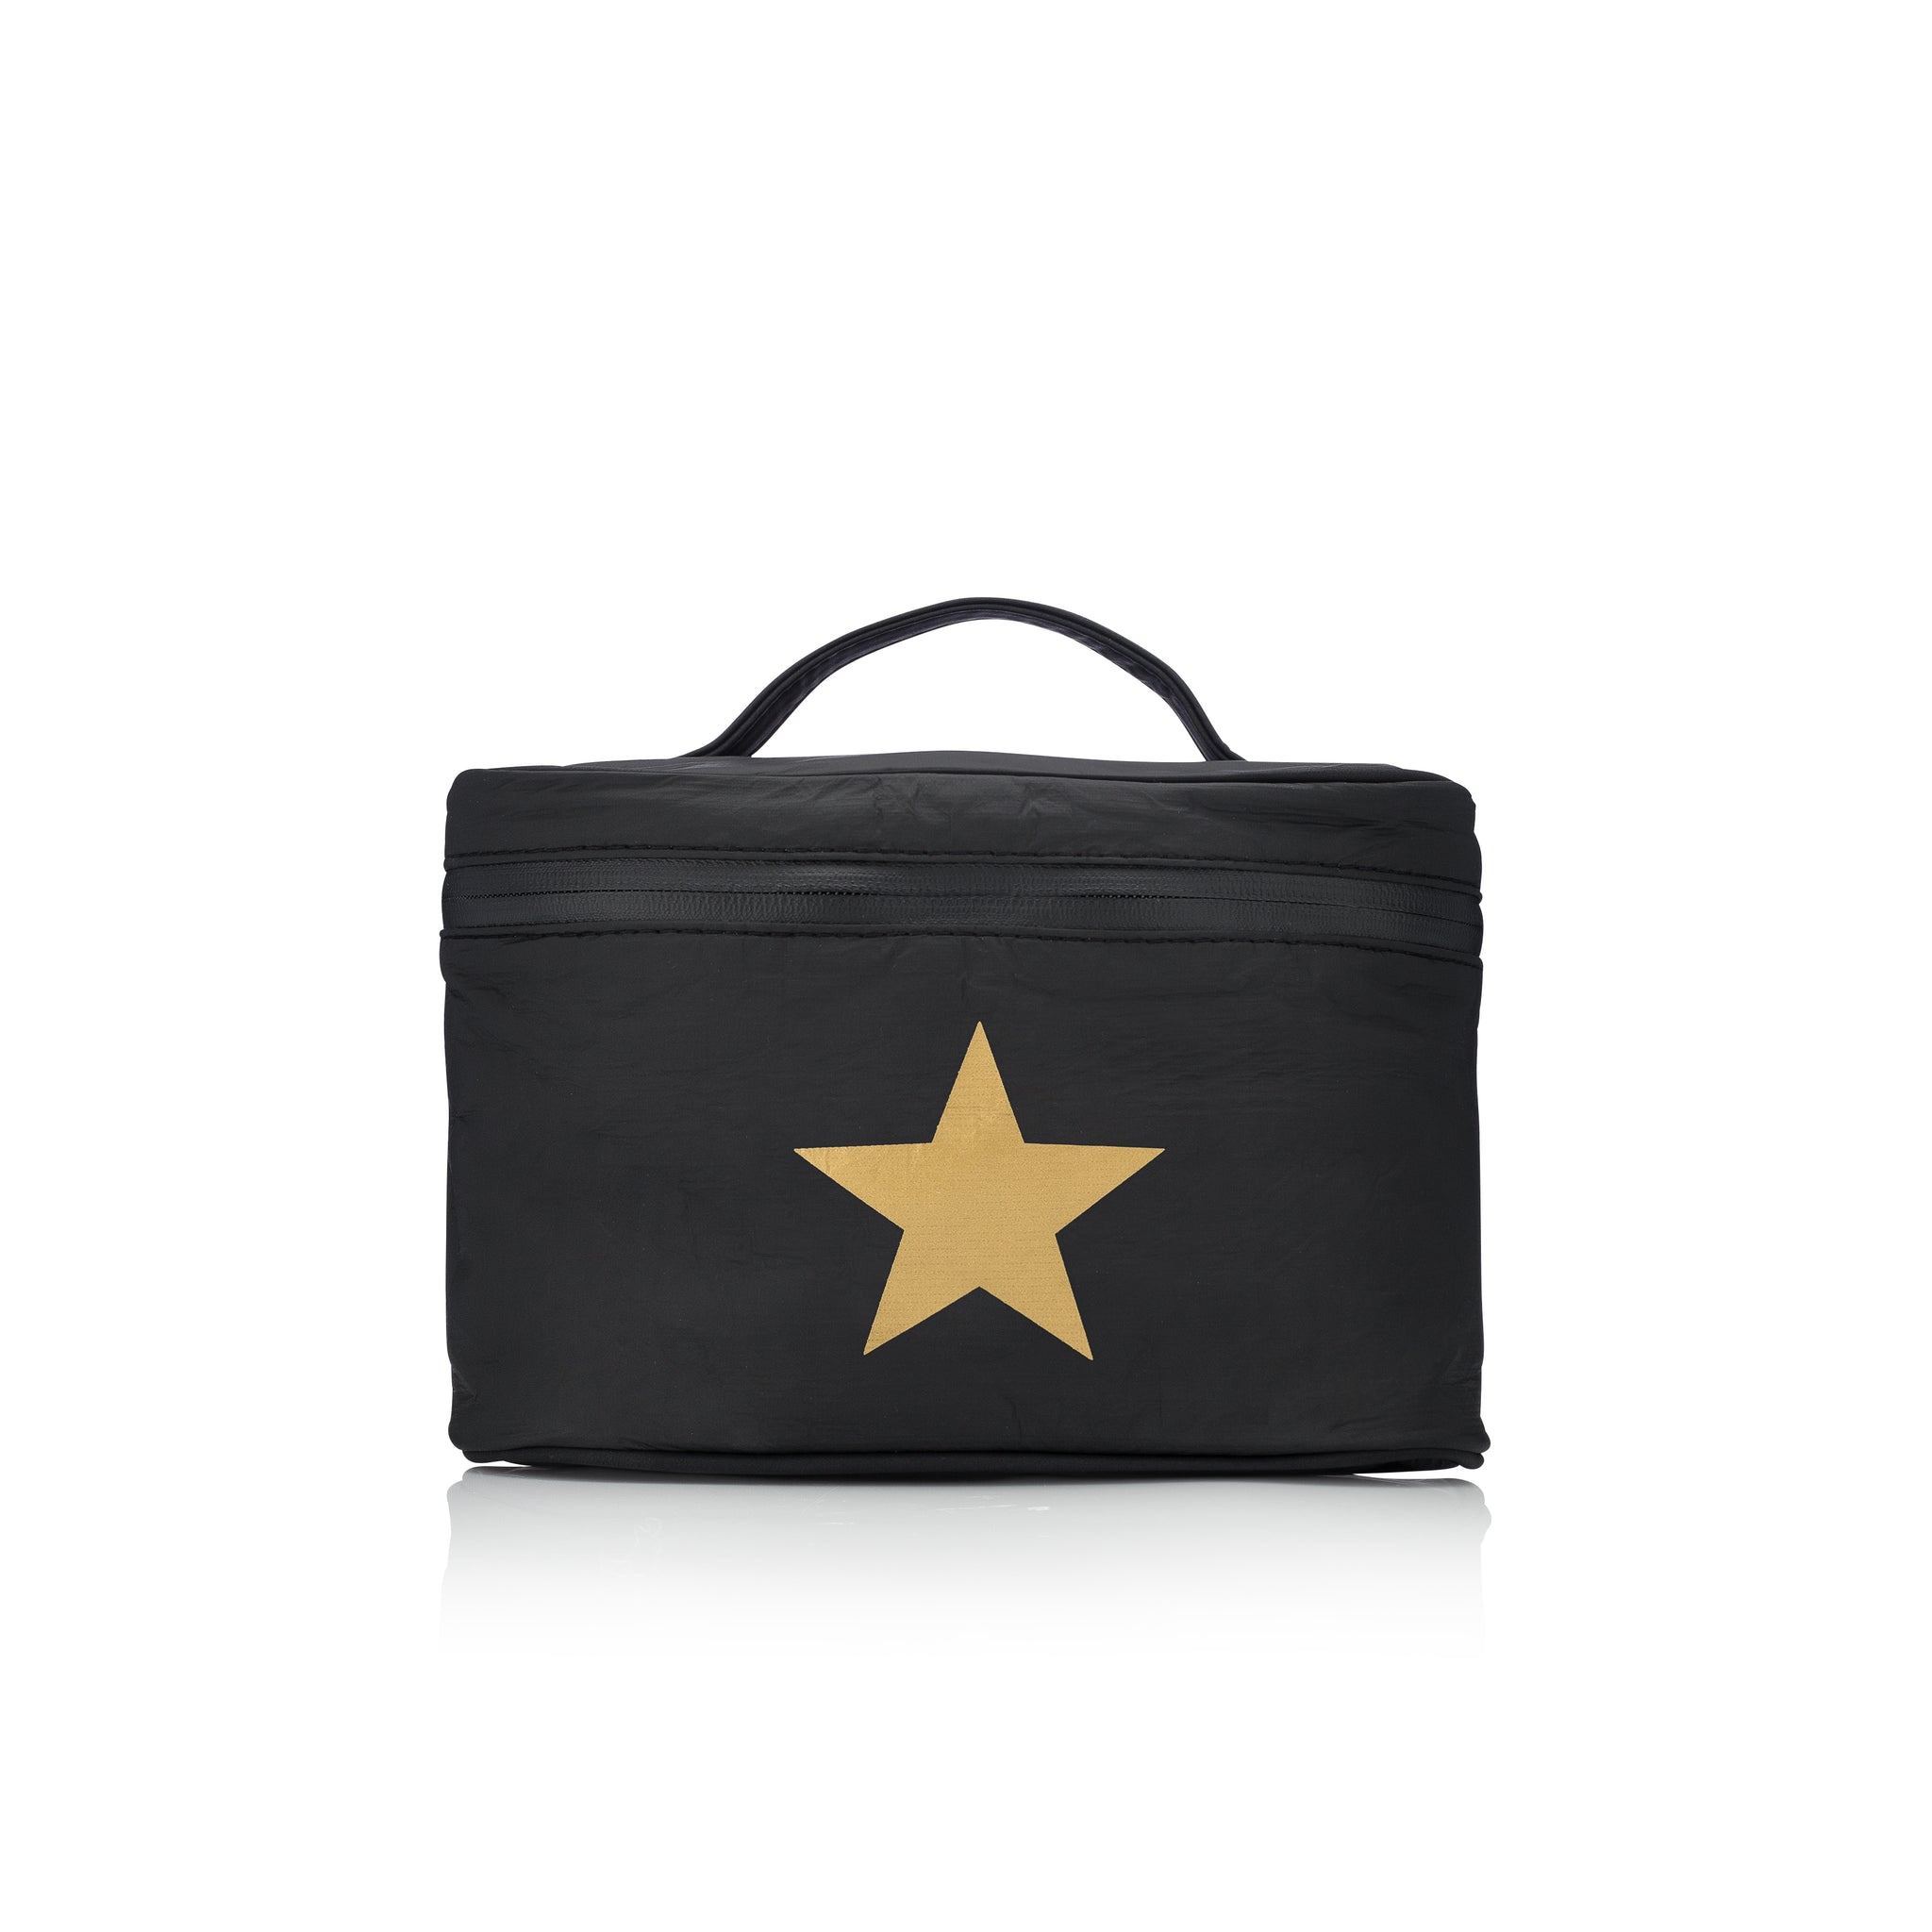 Cosmetic Case - Lunch Box - Black with a Metallic Gold Star